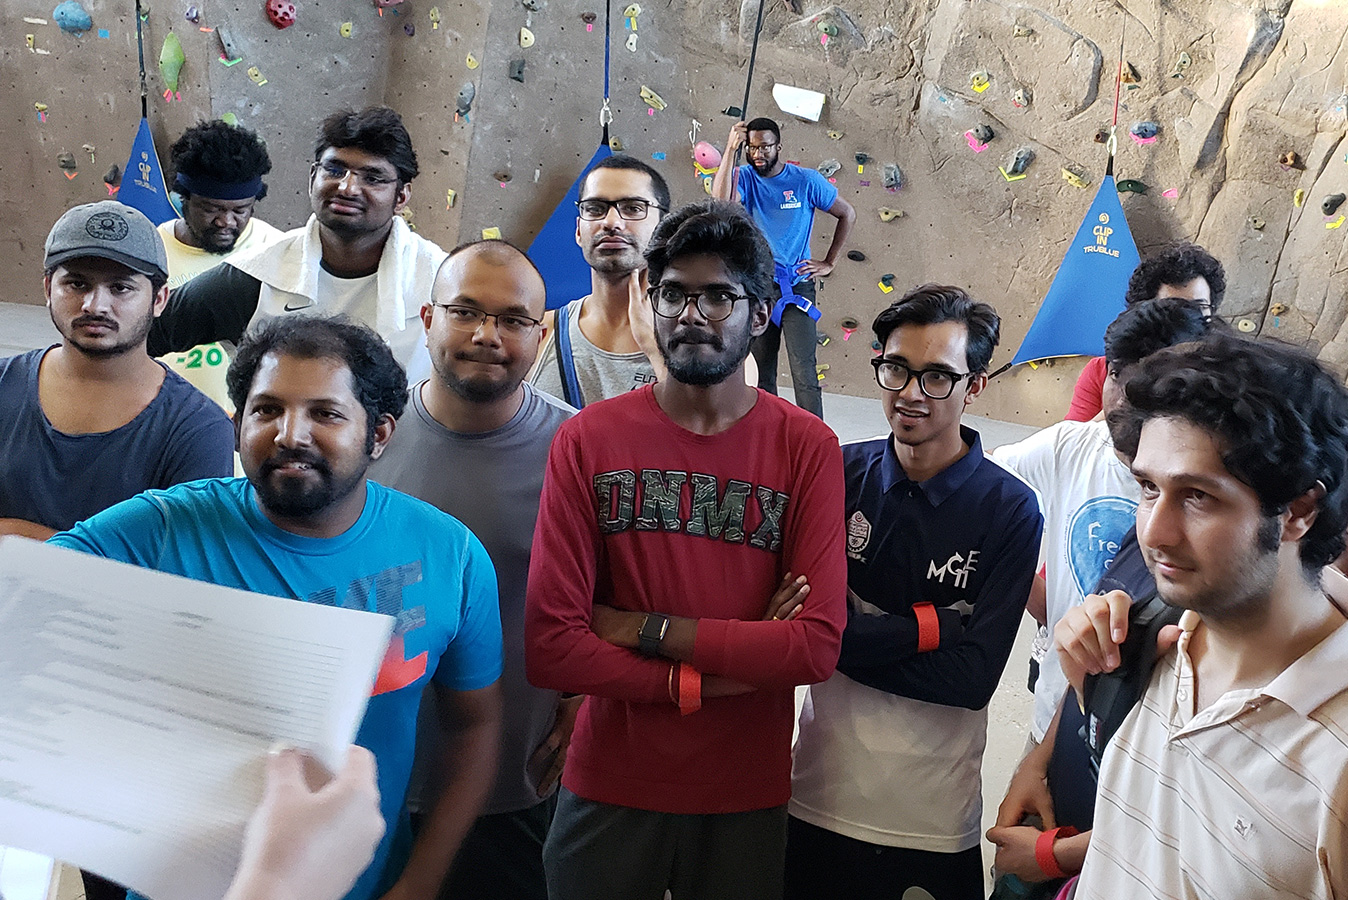 Graduate students gathered in front of a rock climbing wall